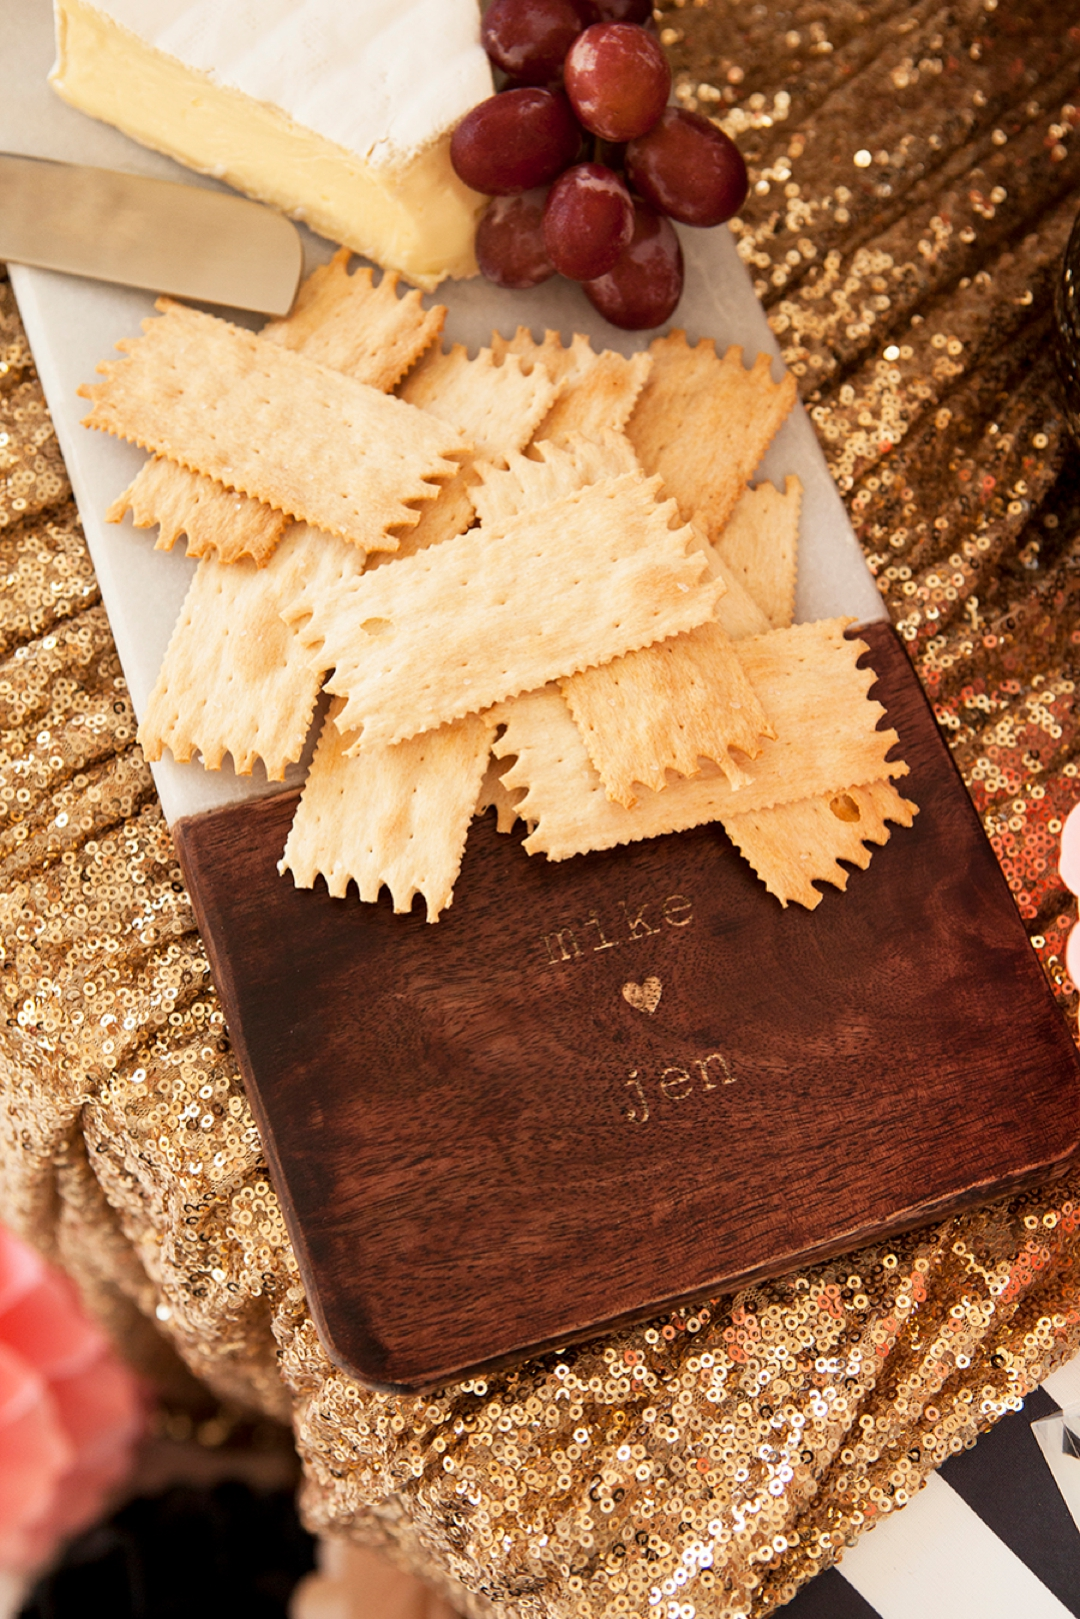 Gorgeous personalized marble and wood cutting board!